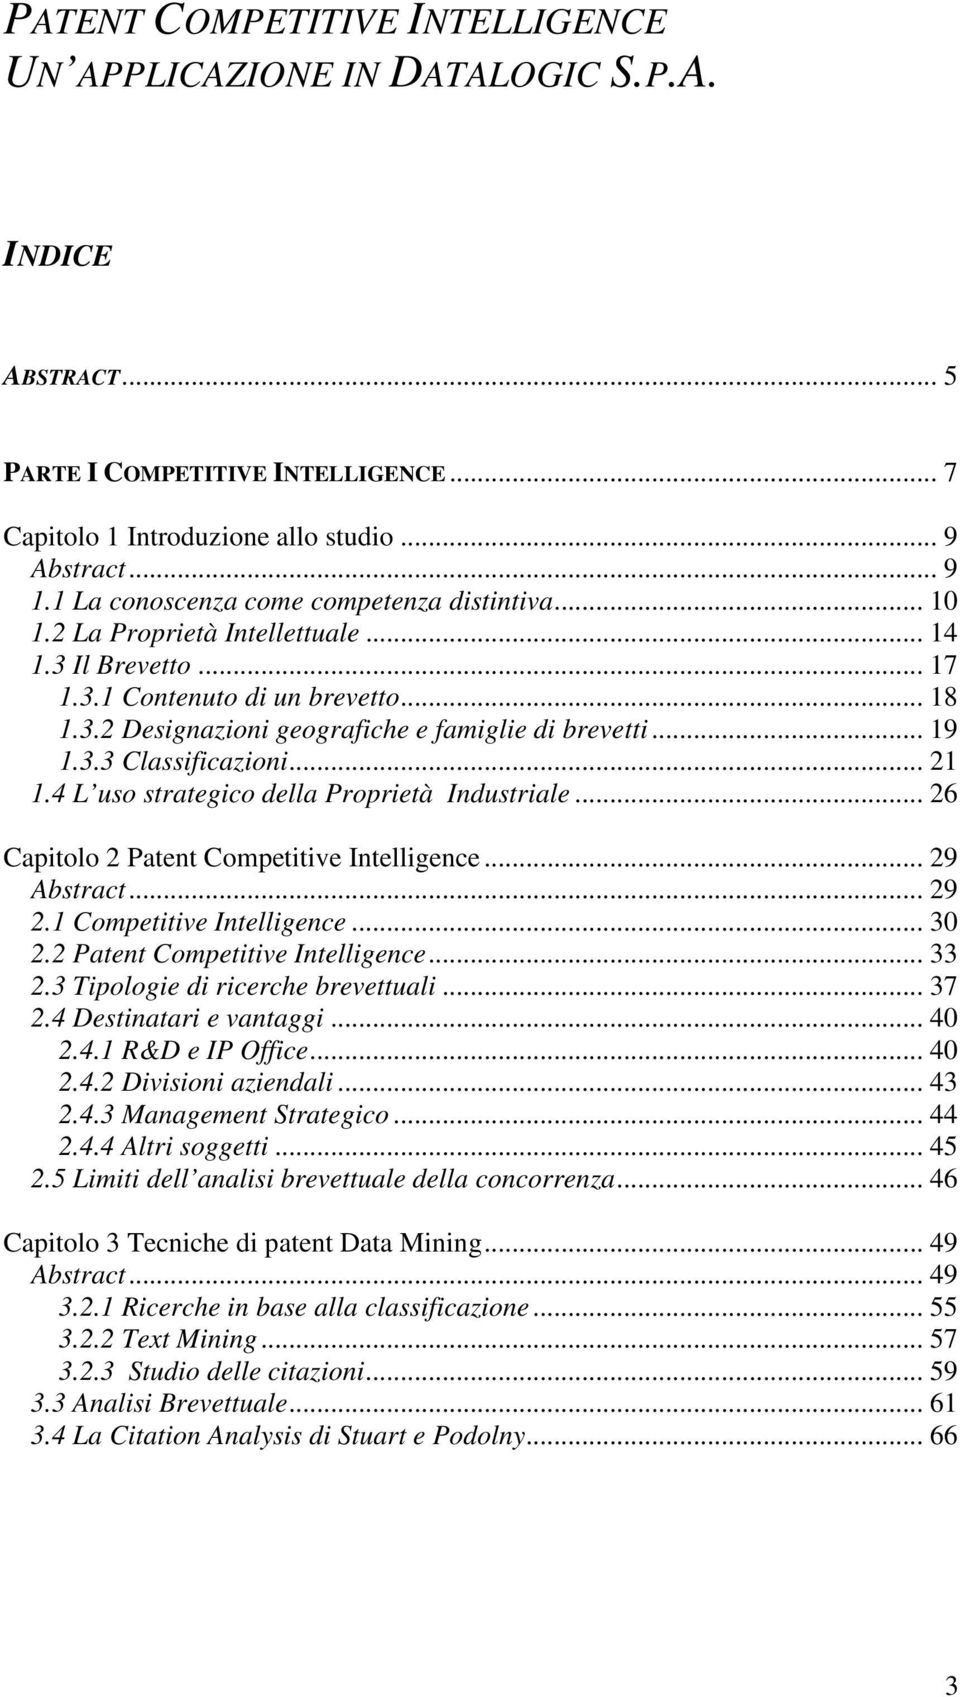 .. 19 1.3.3 Classificazioni... 21 1.4 L uso strategico della Proprietà Industriale... 26 Capitolo 2 Patent Competitive Intelligence... 29 Abstract... 29 2.1 Competitive Intelligence... 30 2.